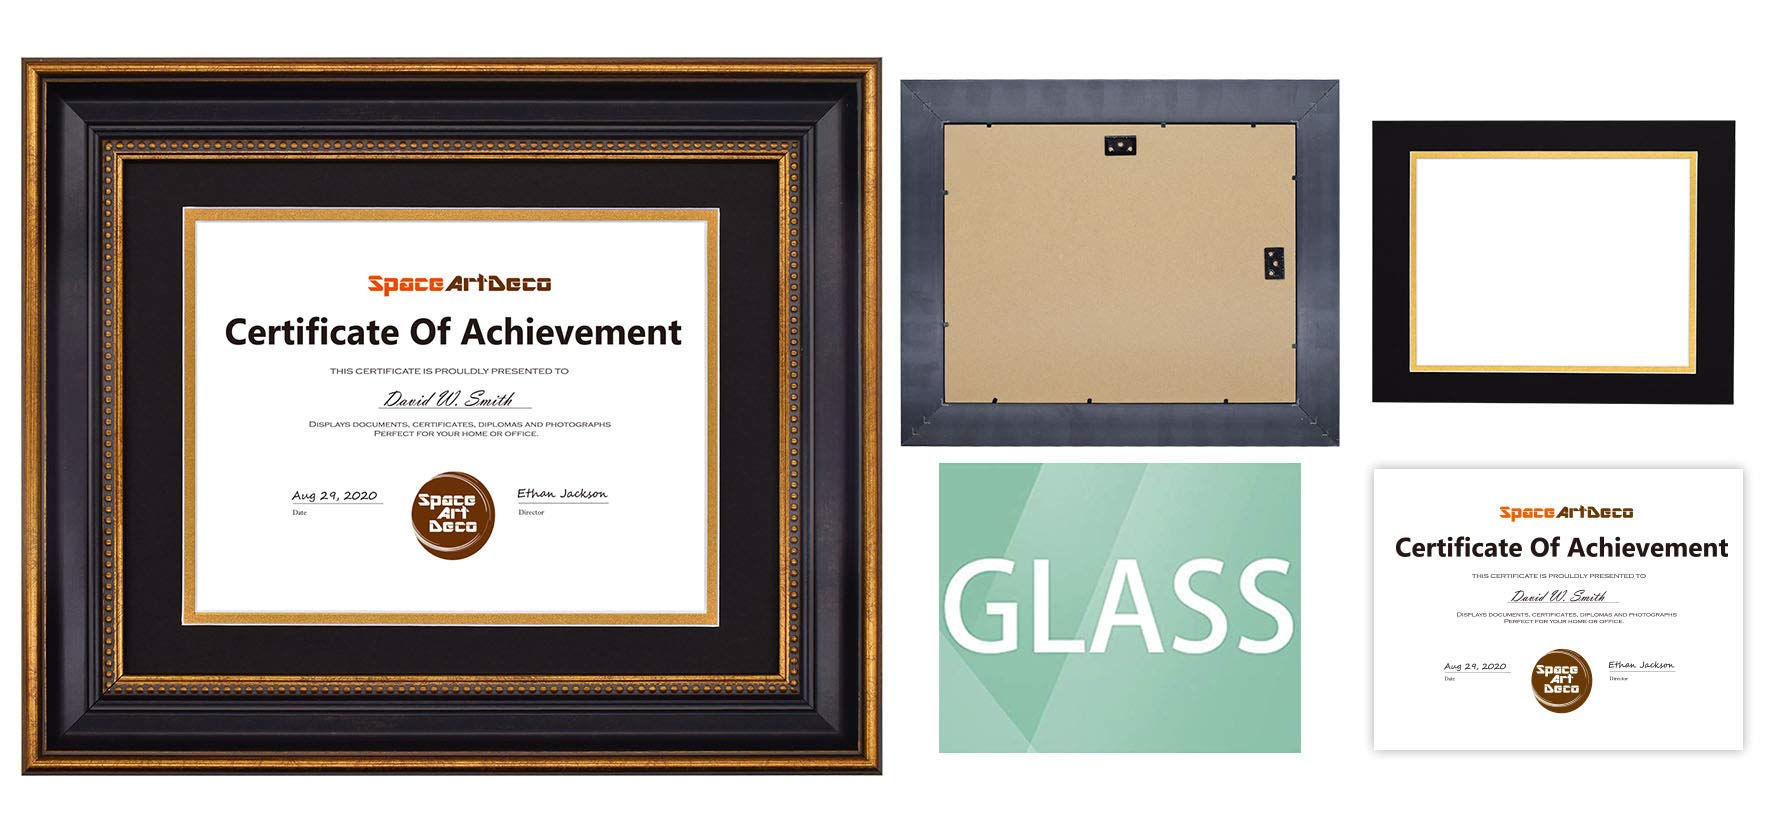 Space Art Deco, 11x14 Ornate Gold Diploma Frame - Black/Gold Double Mat for 8.5x11 Document - Wall Mounting - Sawtooth Hangers - for Graduation, Commencement, Acknowledgements, Degrees by Space Art Deco (Image #6)